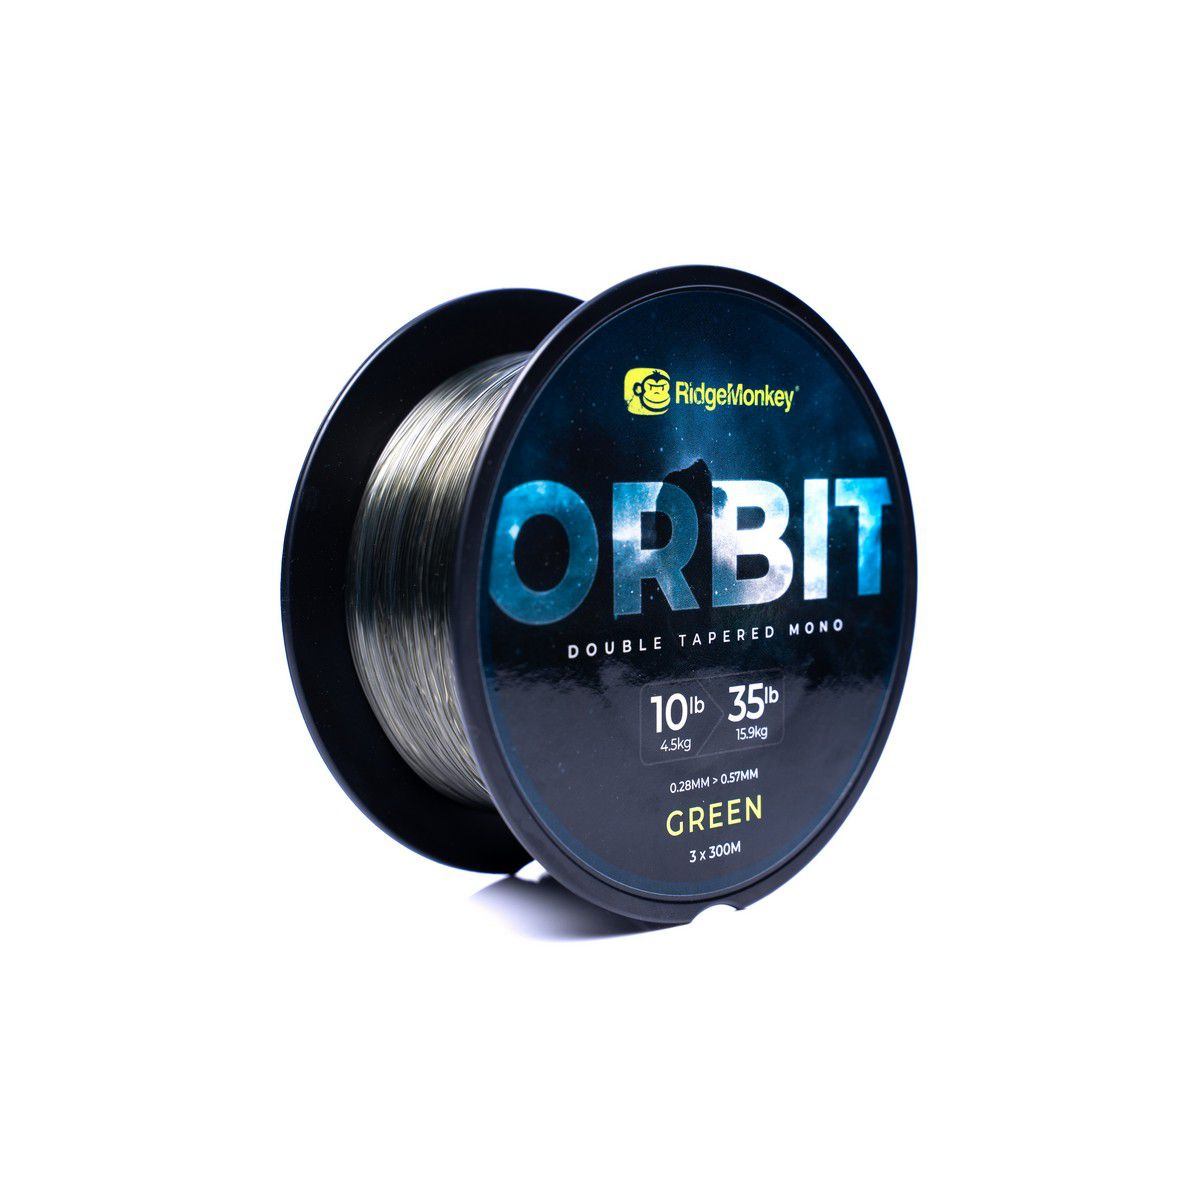 RIDGEMONKEY ORBIT DOUBLE TAPERED MONOFIL ZSINÓR GREEN 3X300M